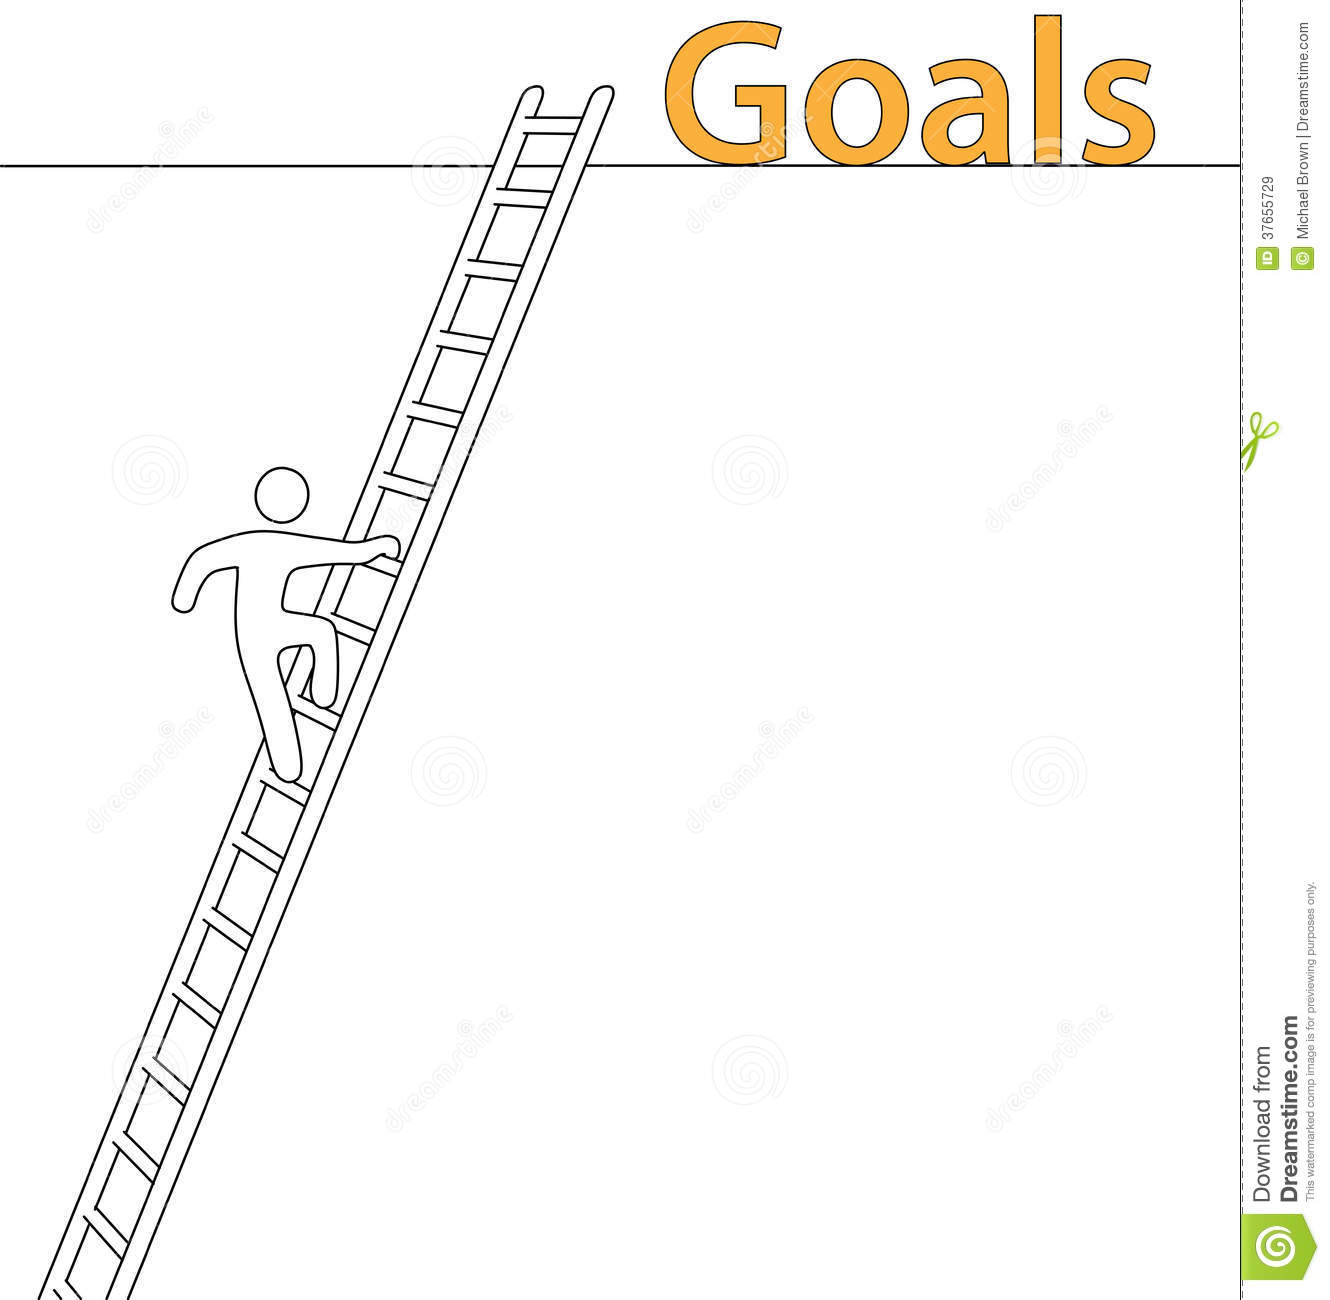 Person Climb Up Ladder Achieve High Goals Royalty Free